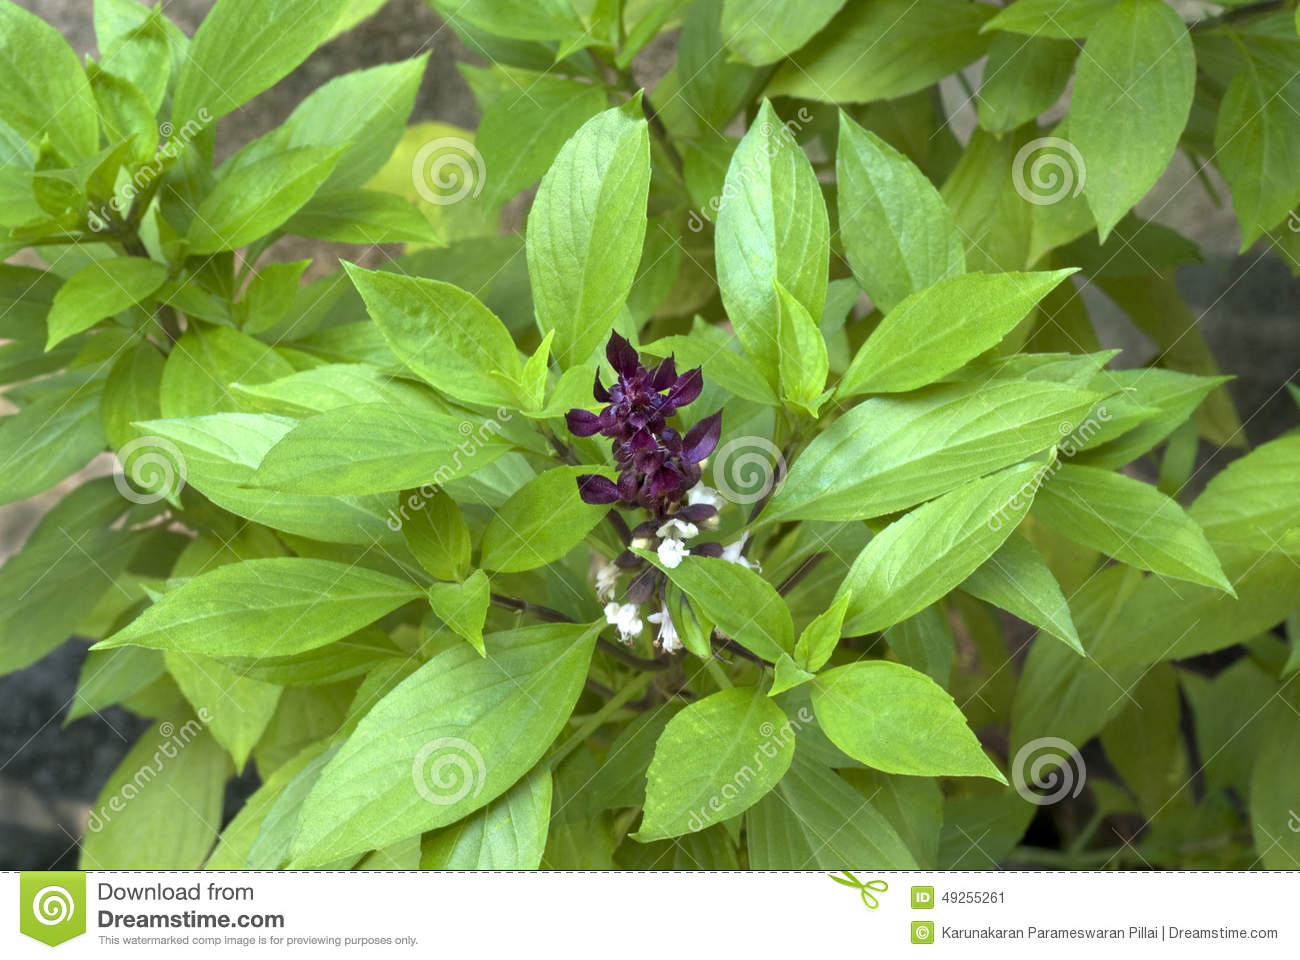 Tulsi Plant Hd Wallpaper: Herb- Clove Basil- Leaves And Flowers Stock Image